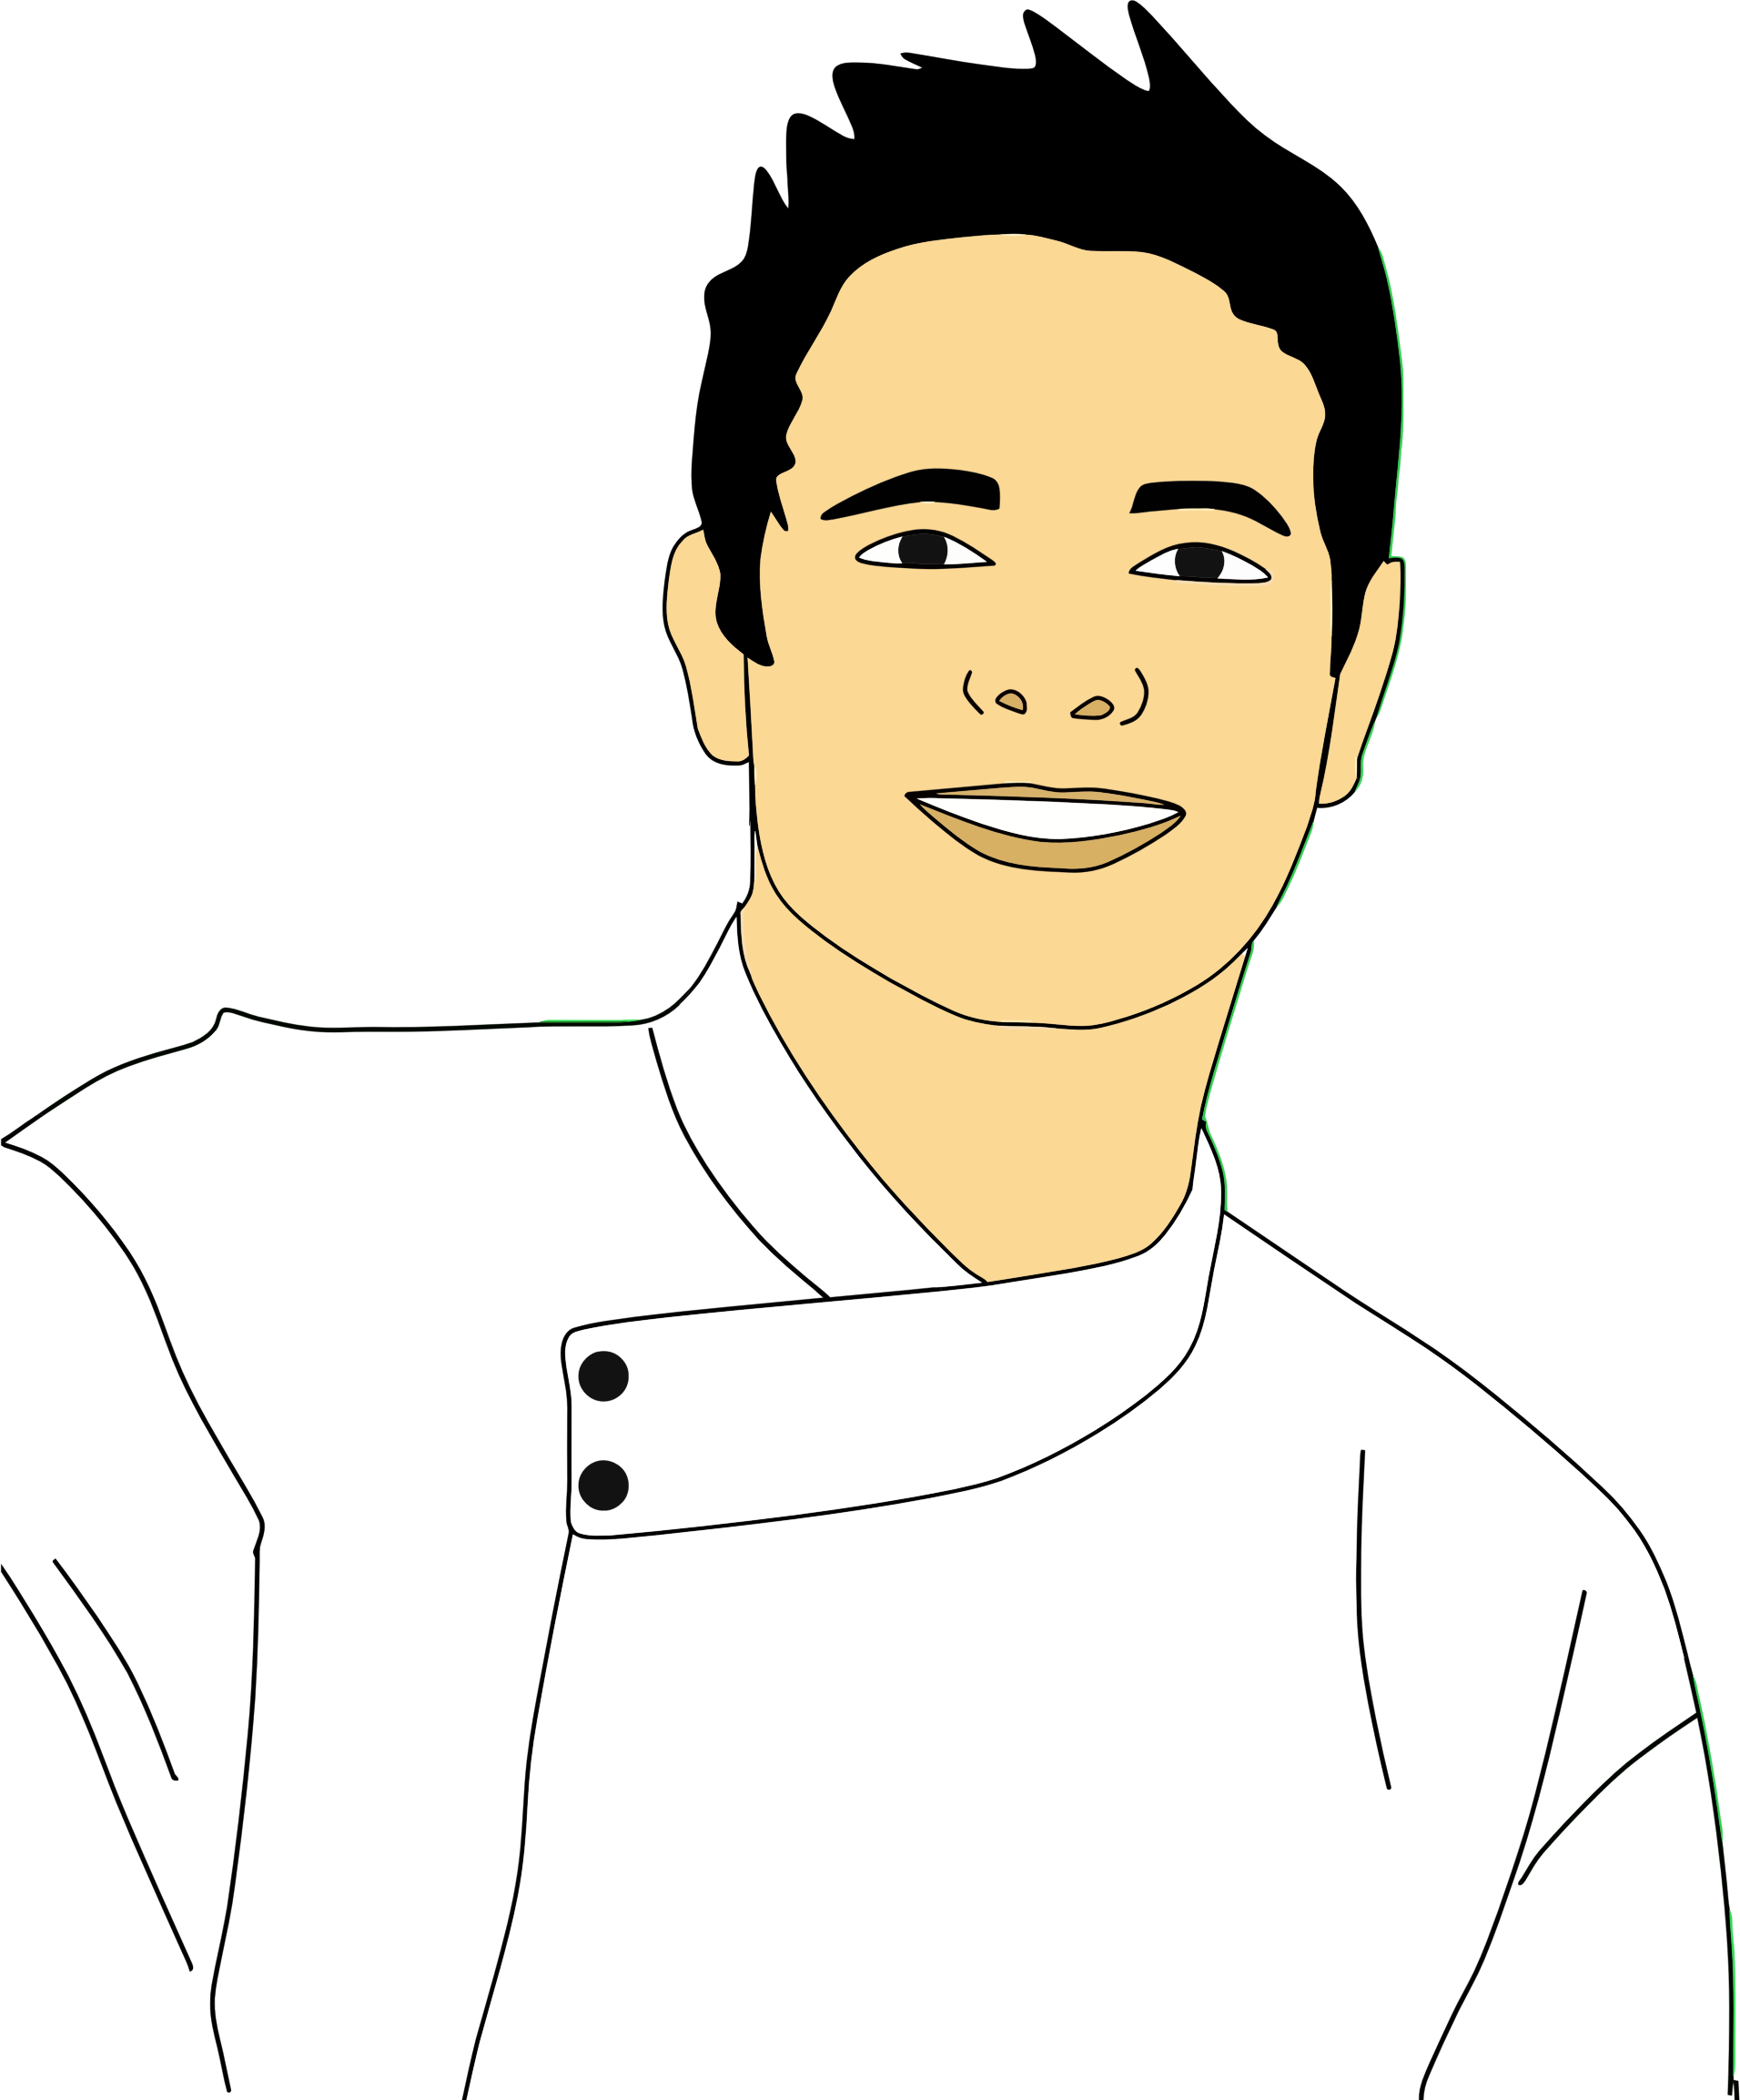 png transparent stock Male clipart man portrait. Chef big image png.